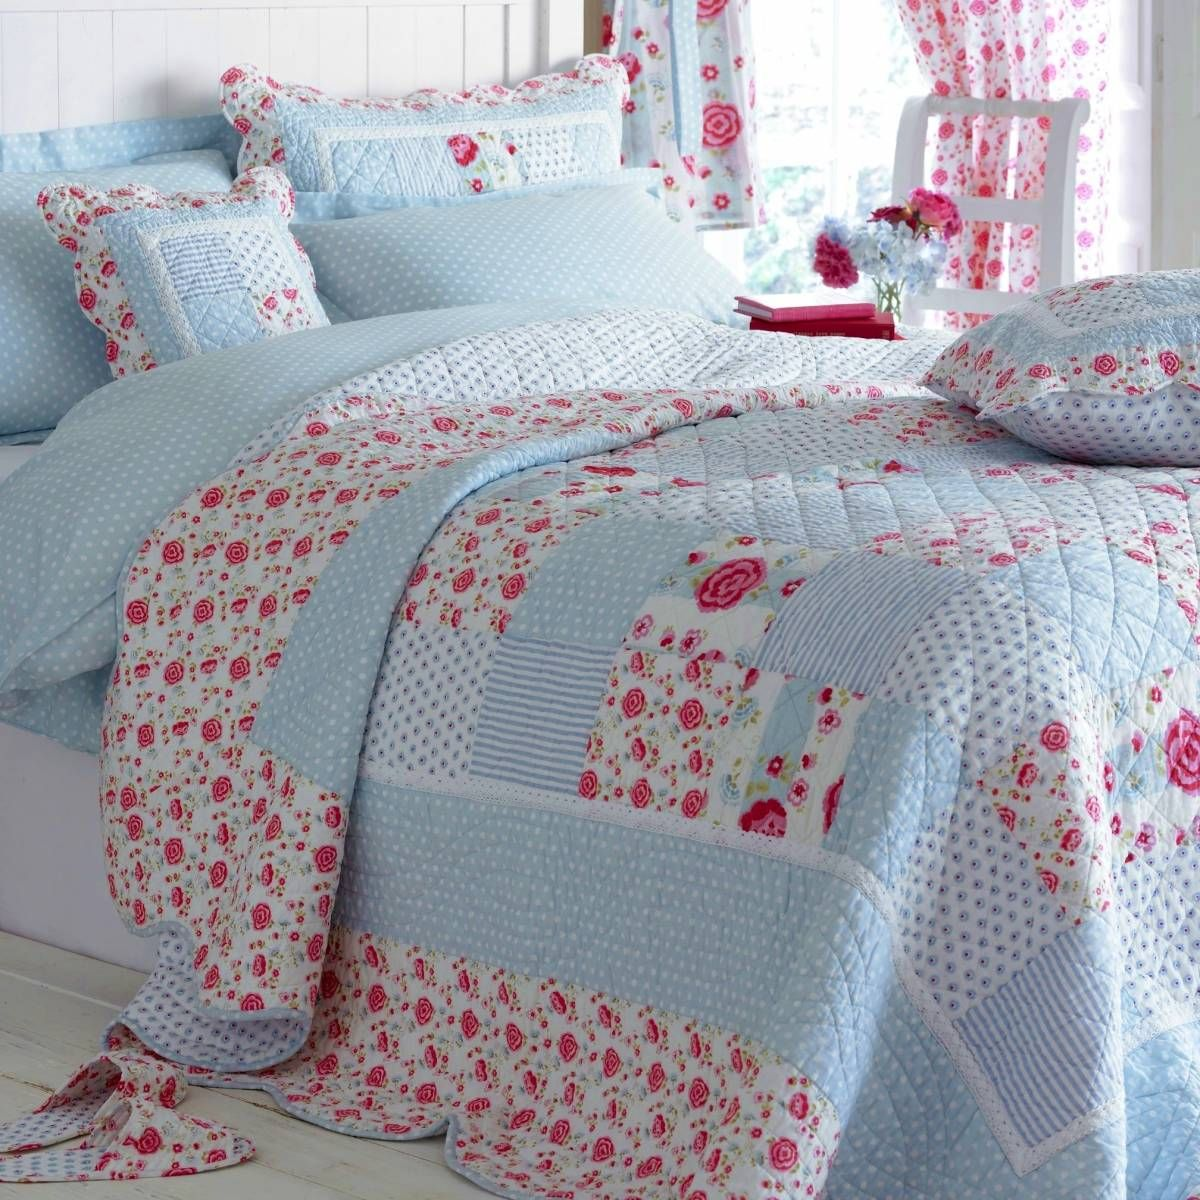 Bed sheet design patchwork - Quilts Home Childrens Girls Bedding Catherine Patchwork Quilt Bed